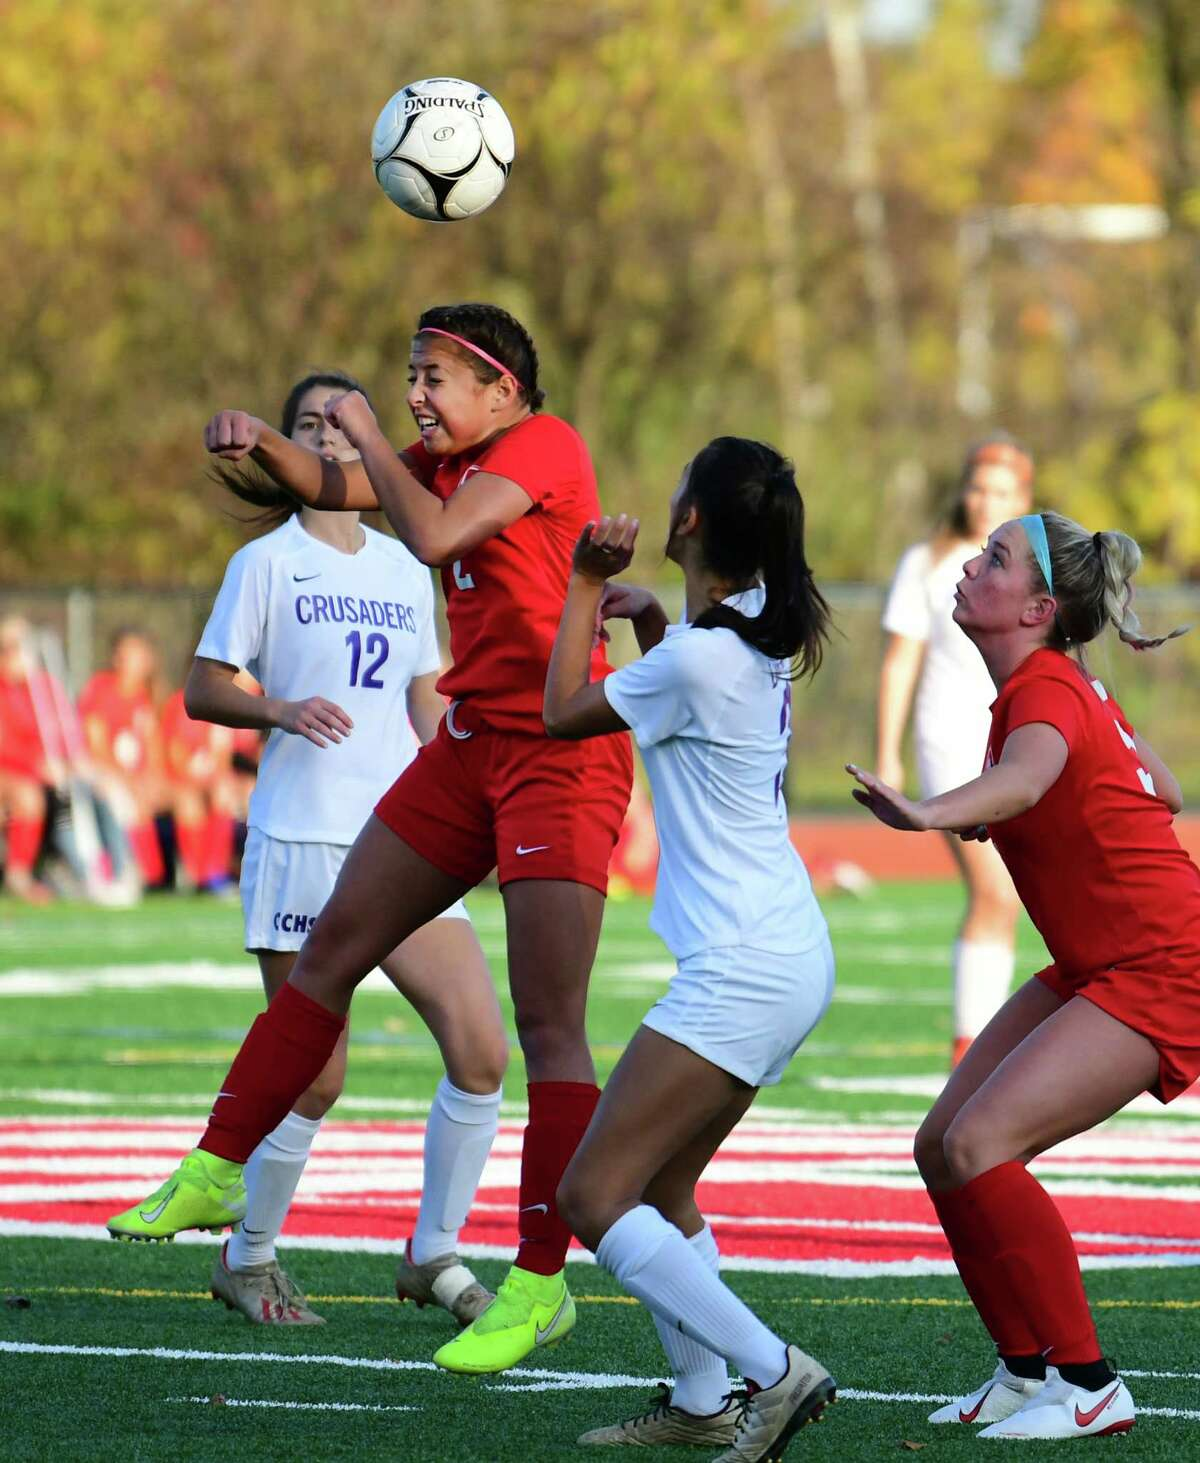 Mechanicville's Nevaeh D'Alioa, #2. heads the ball against Catholic Central High School during the Class B girl's soccer playoff game on Thursday, Oct. 24, 2019 in Mechanicville, N.Y. (Lori Van Buren/Times Union)